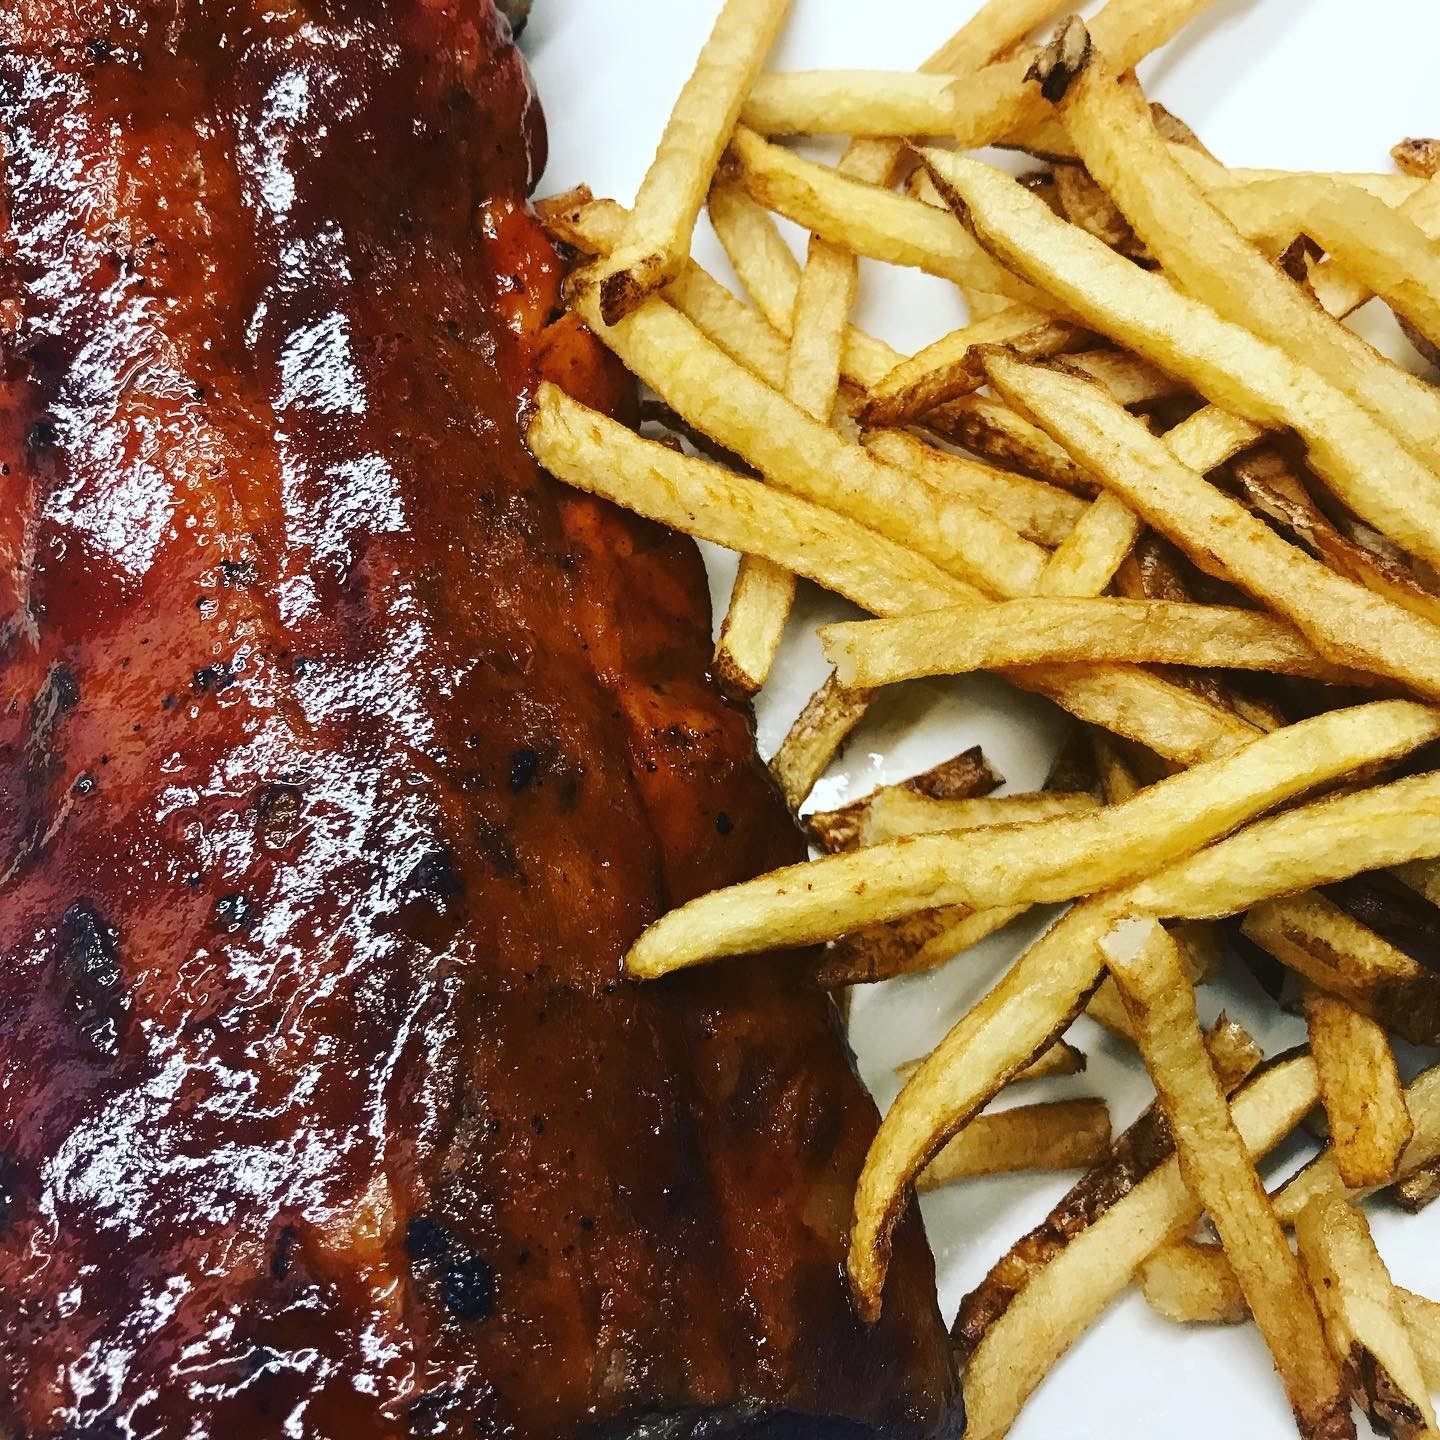 BBQ Baby Back ribs with side of french fries